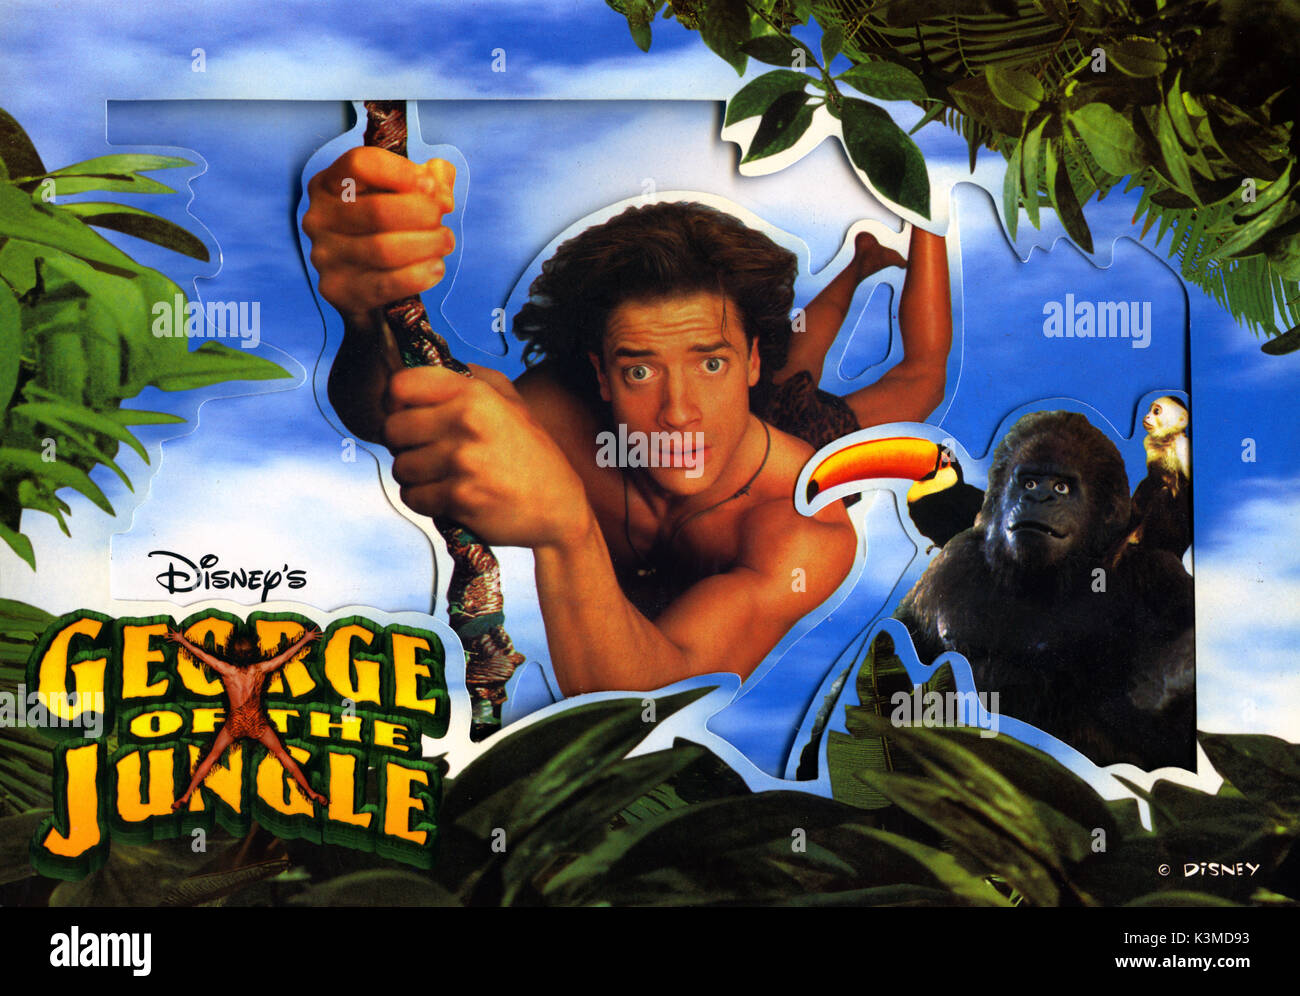 george of the jungle 1997 full movie free download